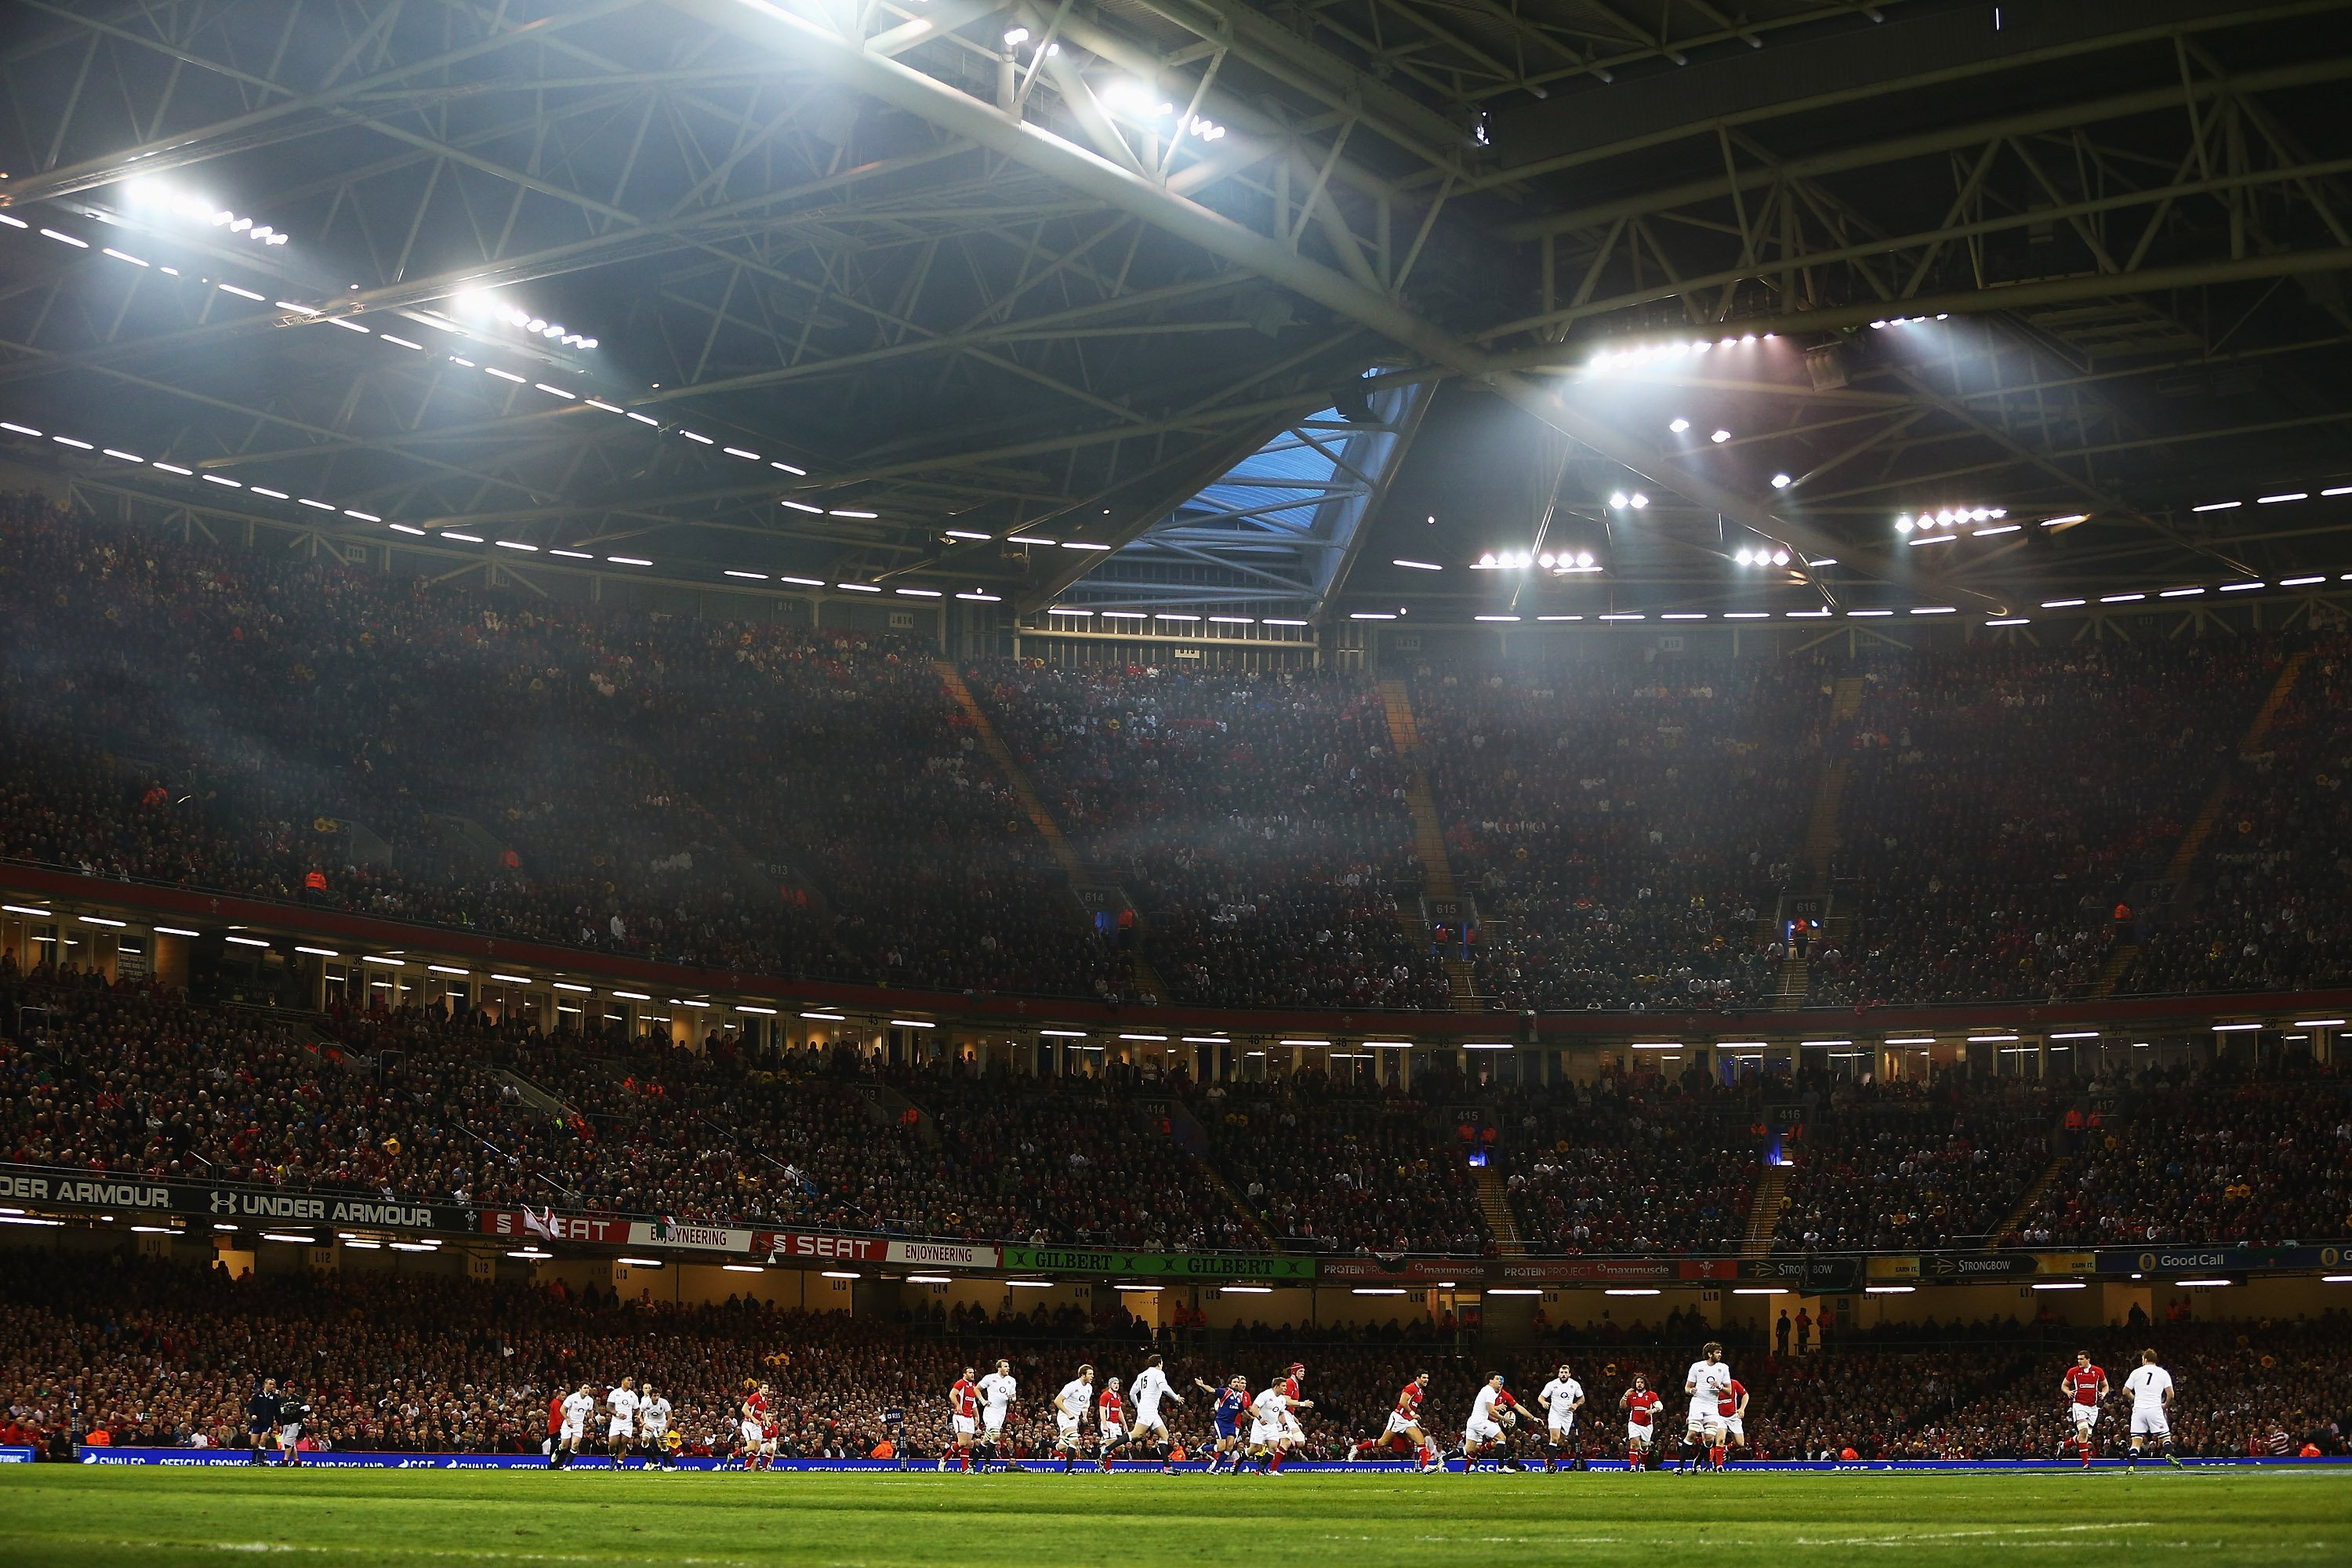 Wales v England at Millennium Stadium in the 2013 Six Nations